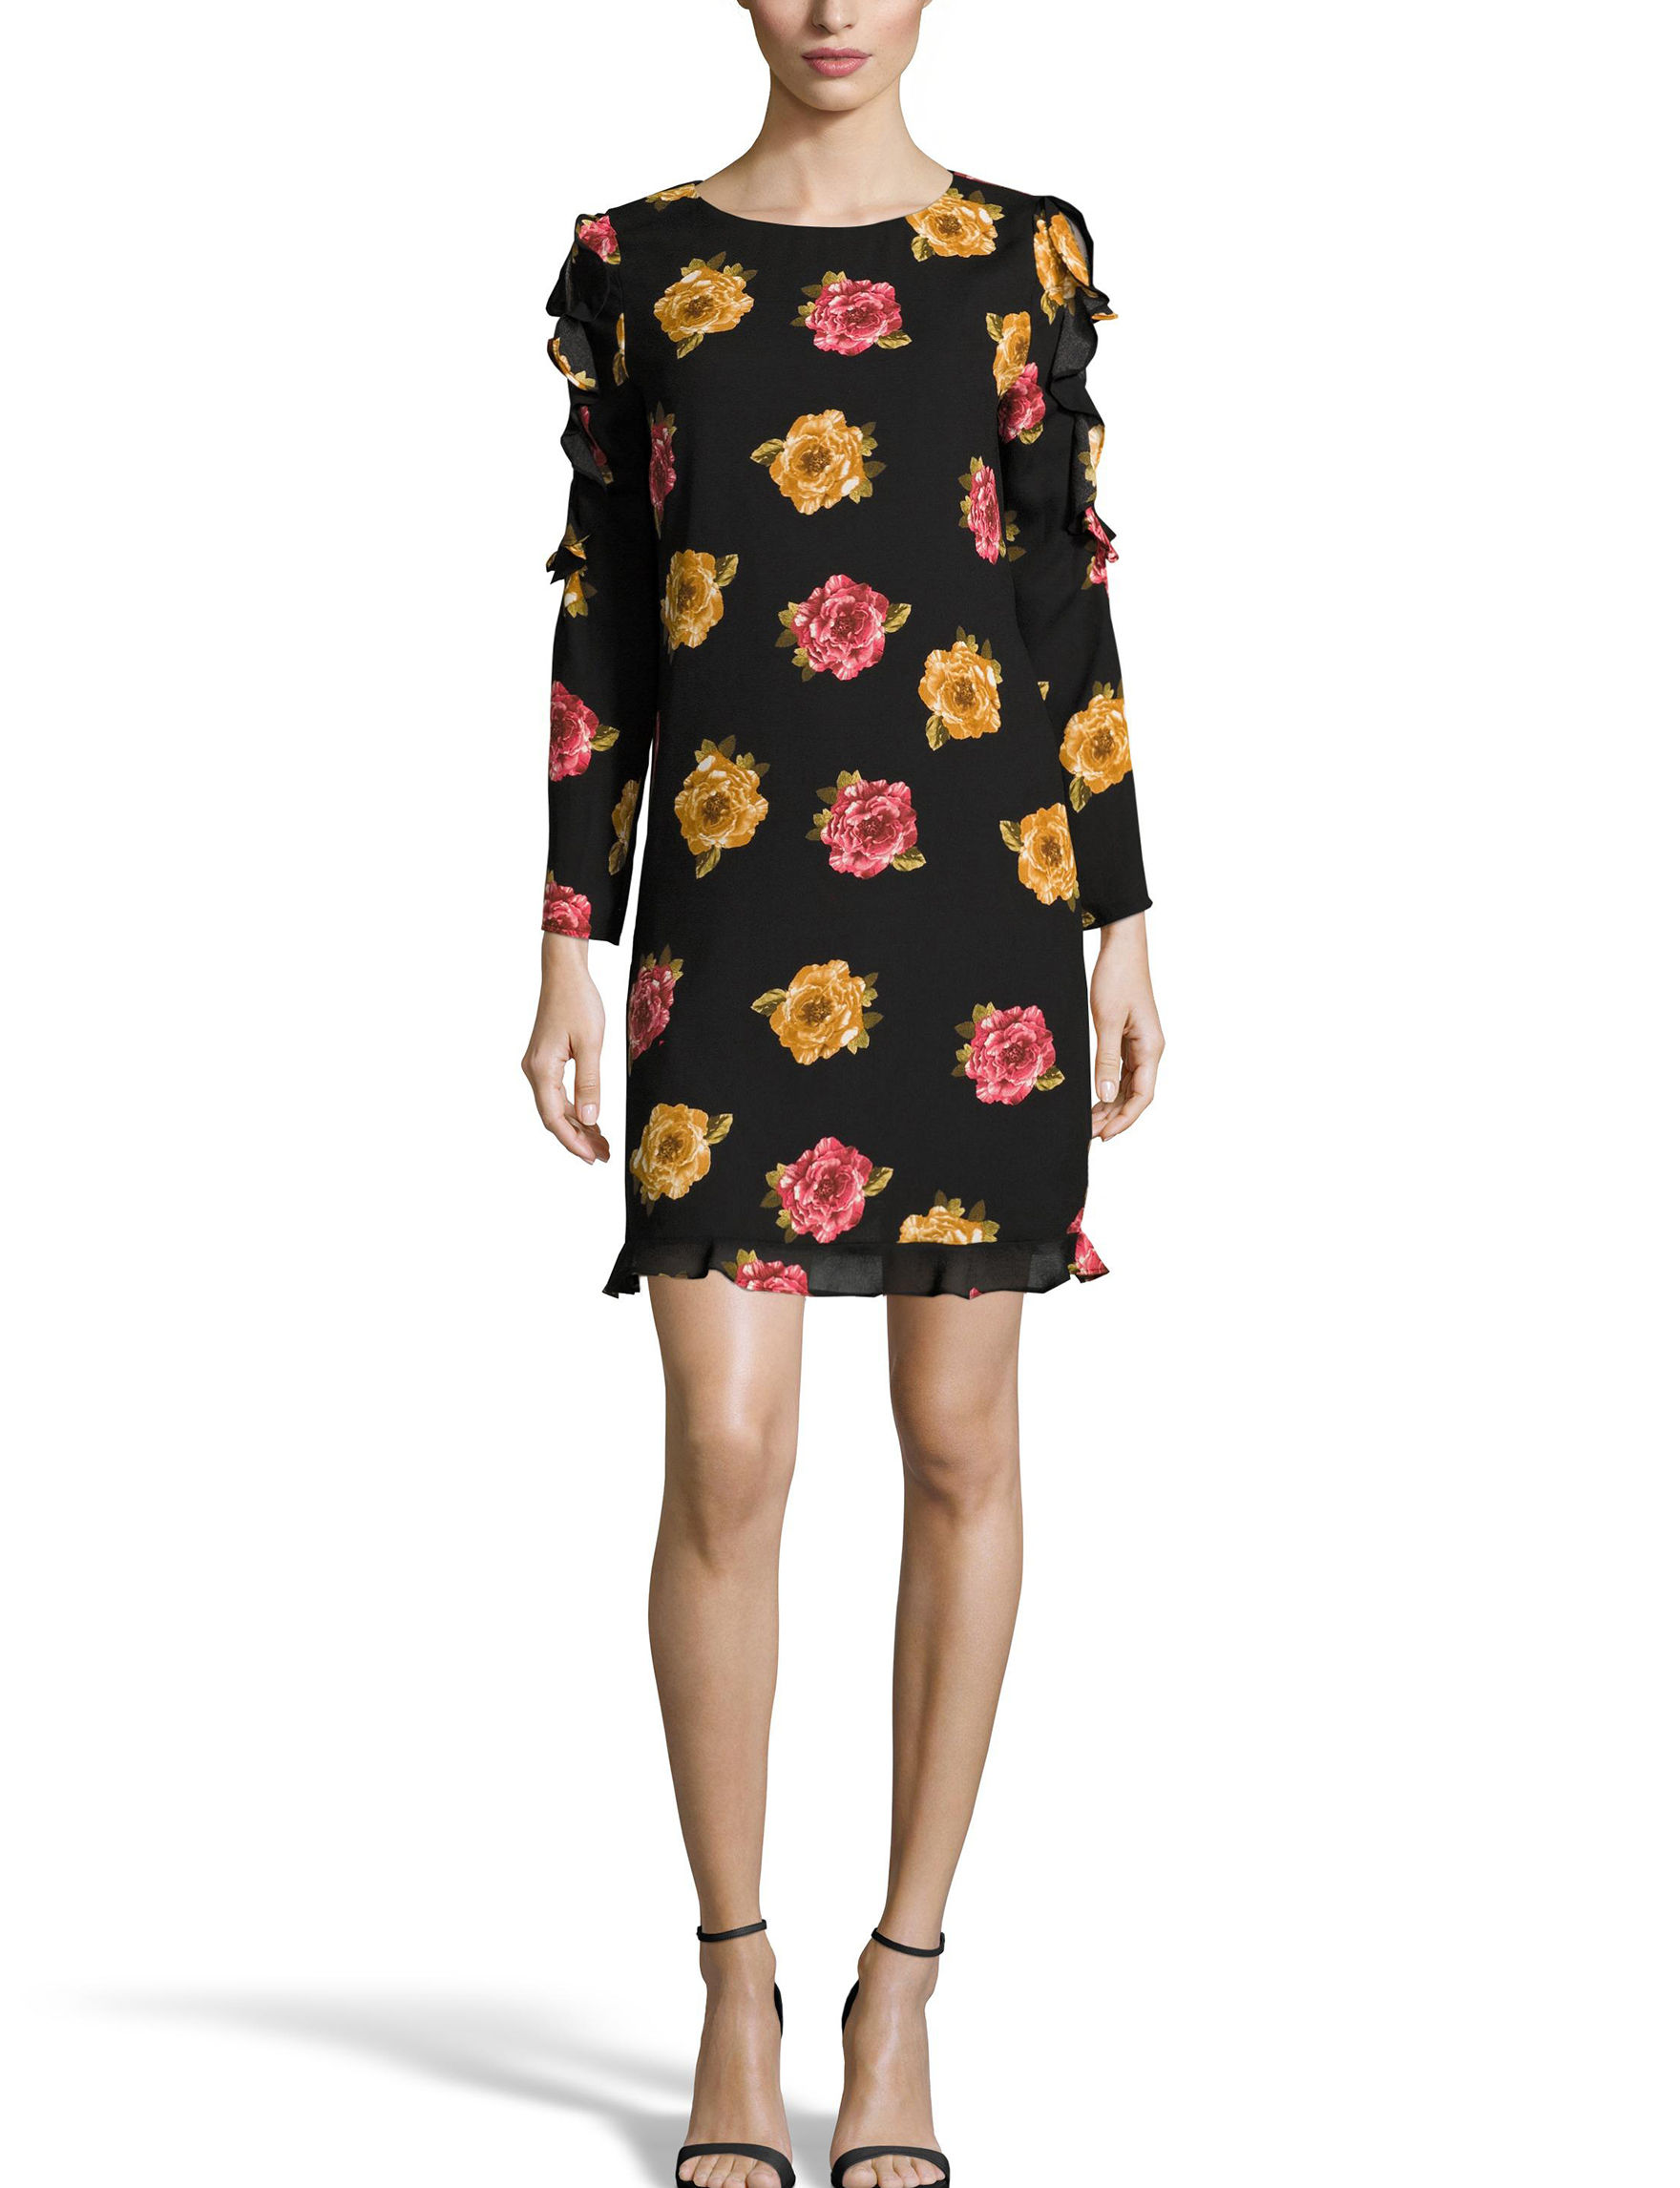 Nicole Miller Black Everyday & Casual Shift Dresses